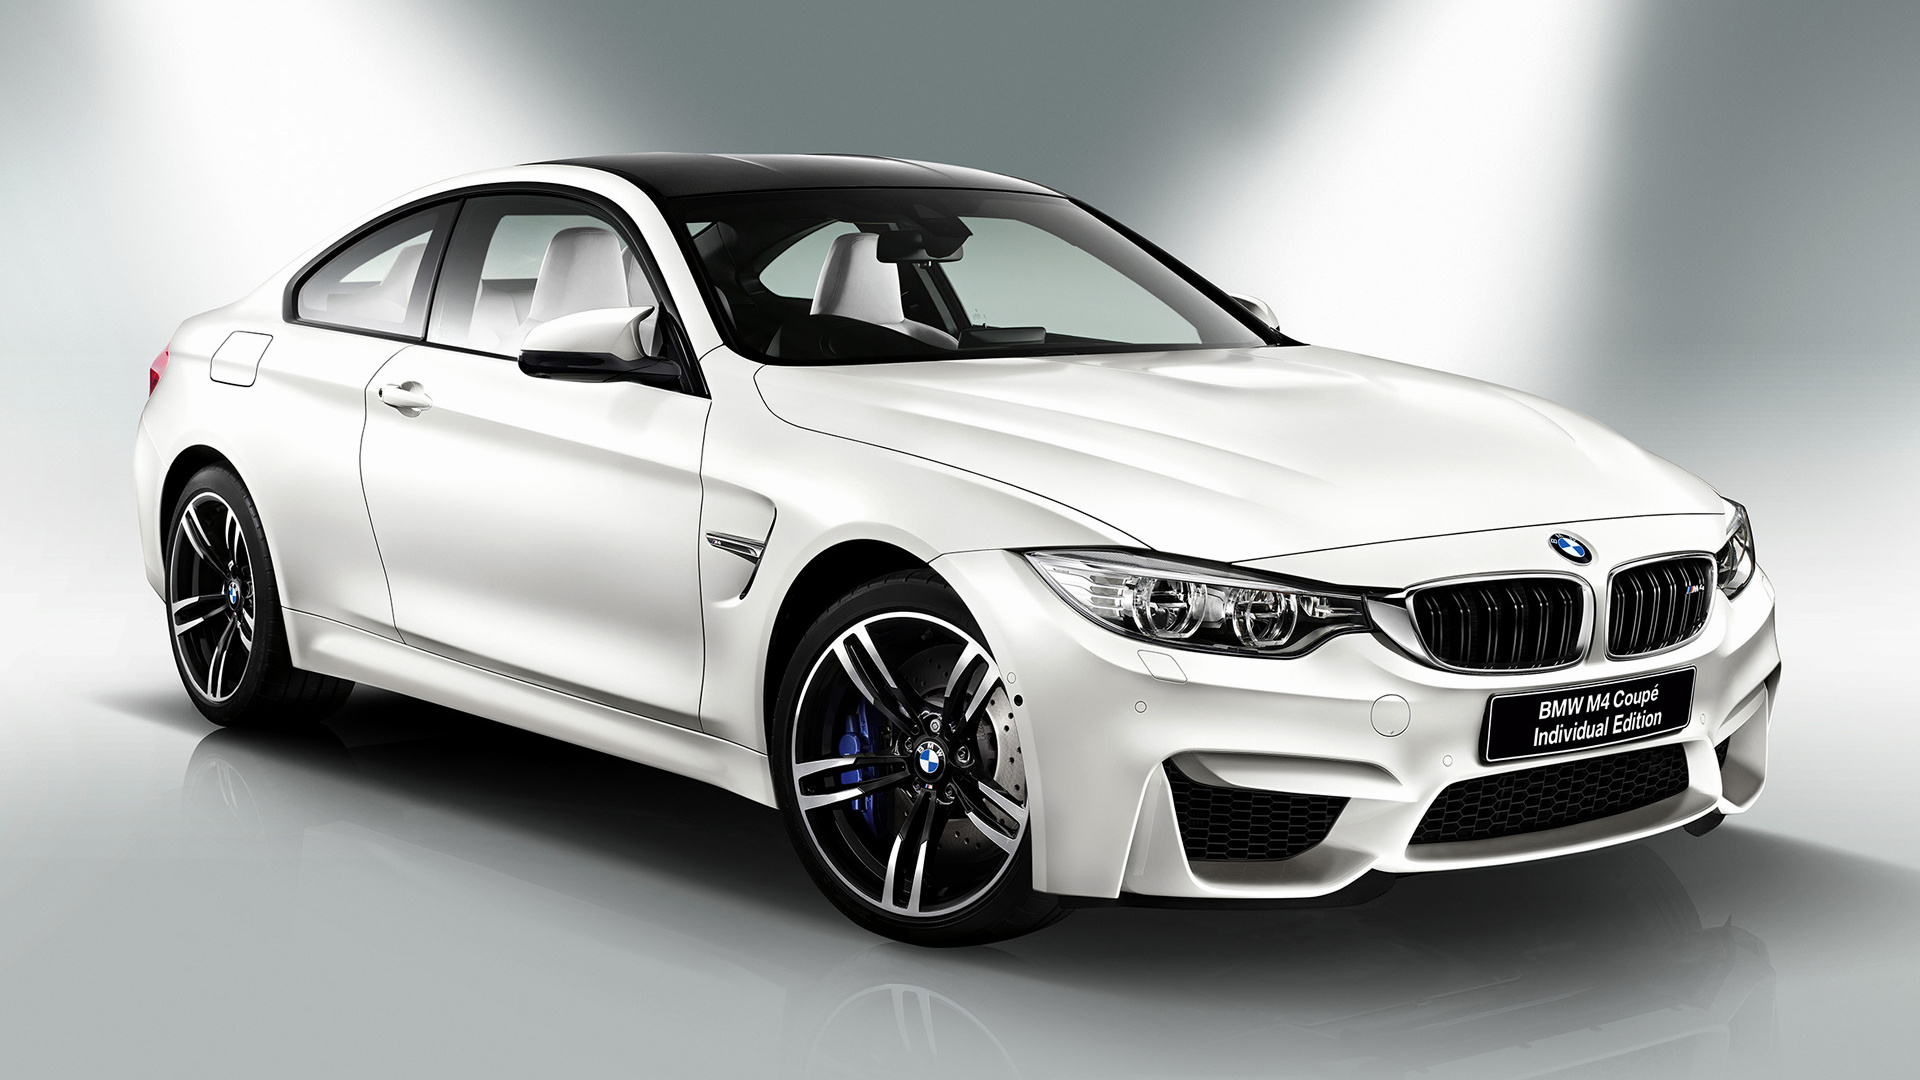 Jeep Suv 2015 >> 2015 BMW M4 Coupe Individual Edition (JP) - Wallpapers and ...